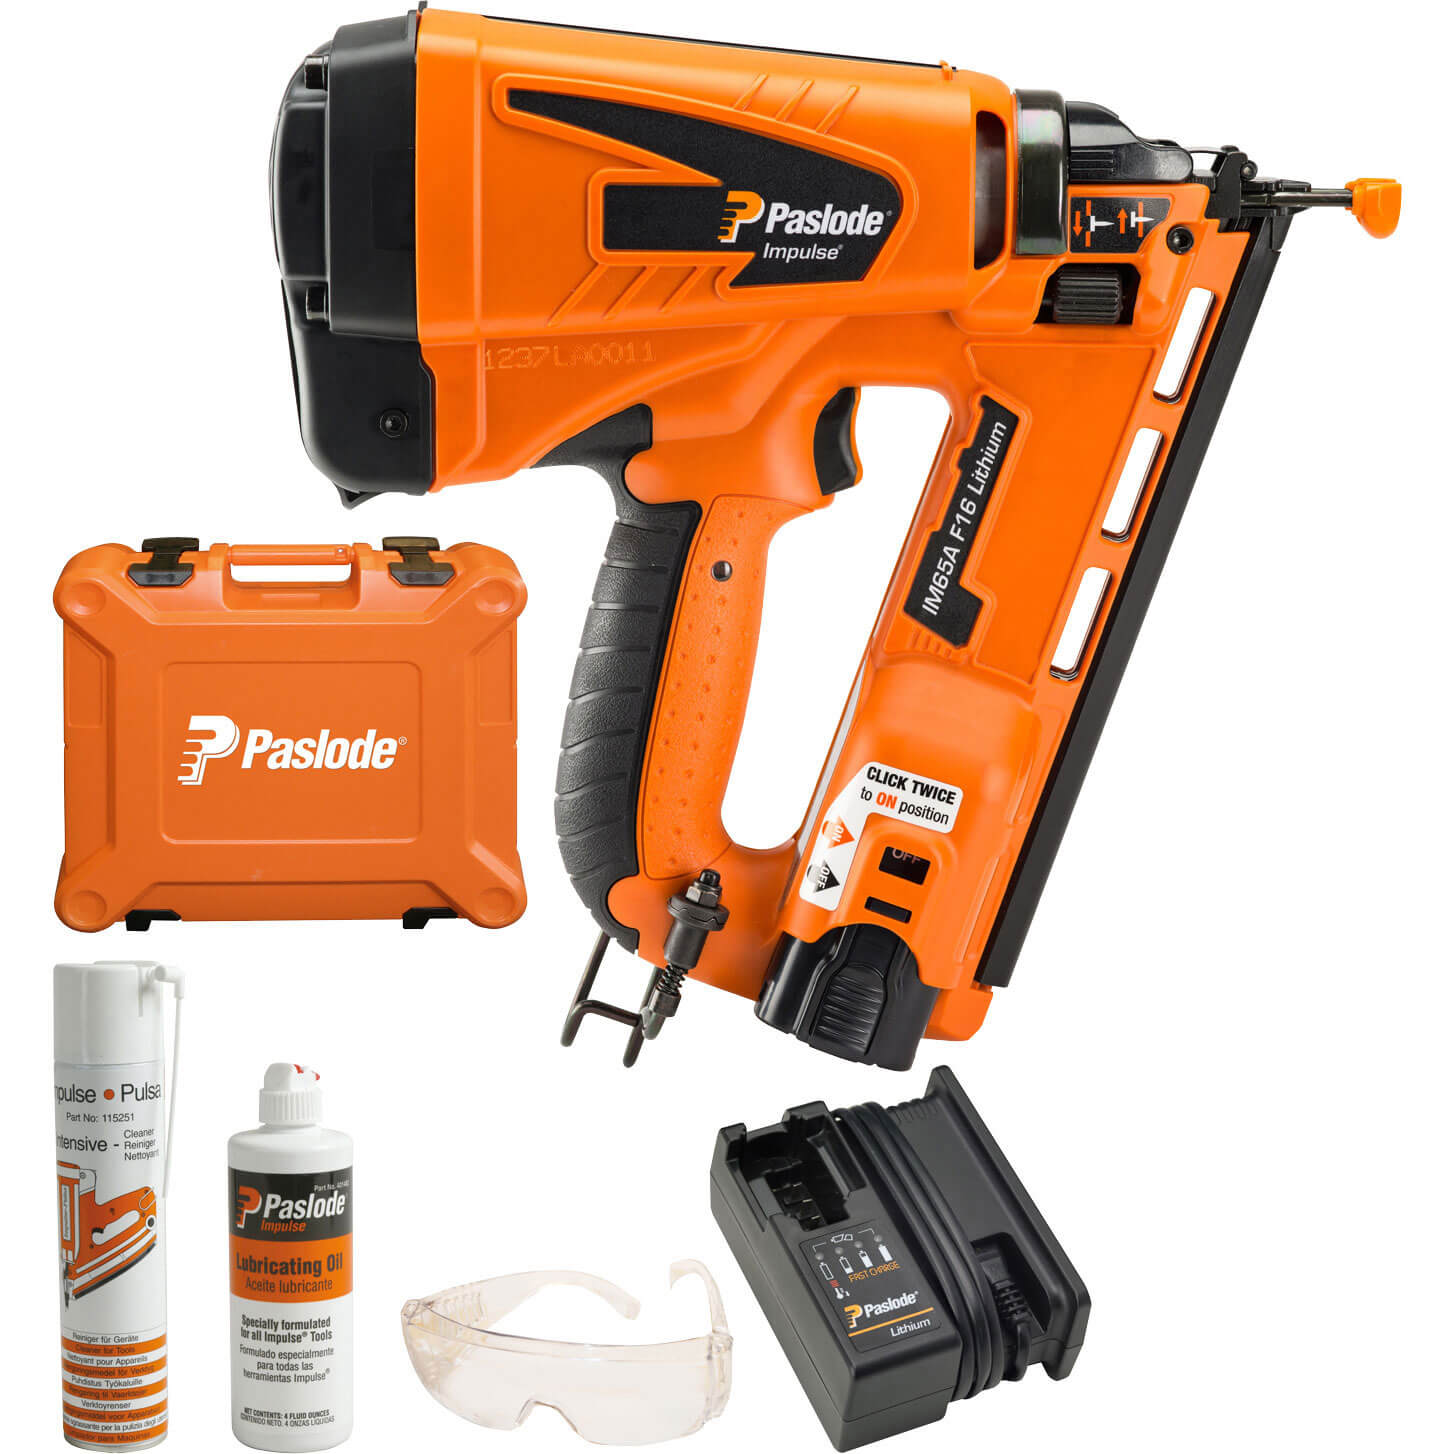 Paslode Impulse IM65A F16 Cordless Gas Angled Brad Nail Gun 32 - 64mm with 1 Lithium Battery 1.25ah